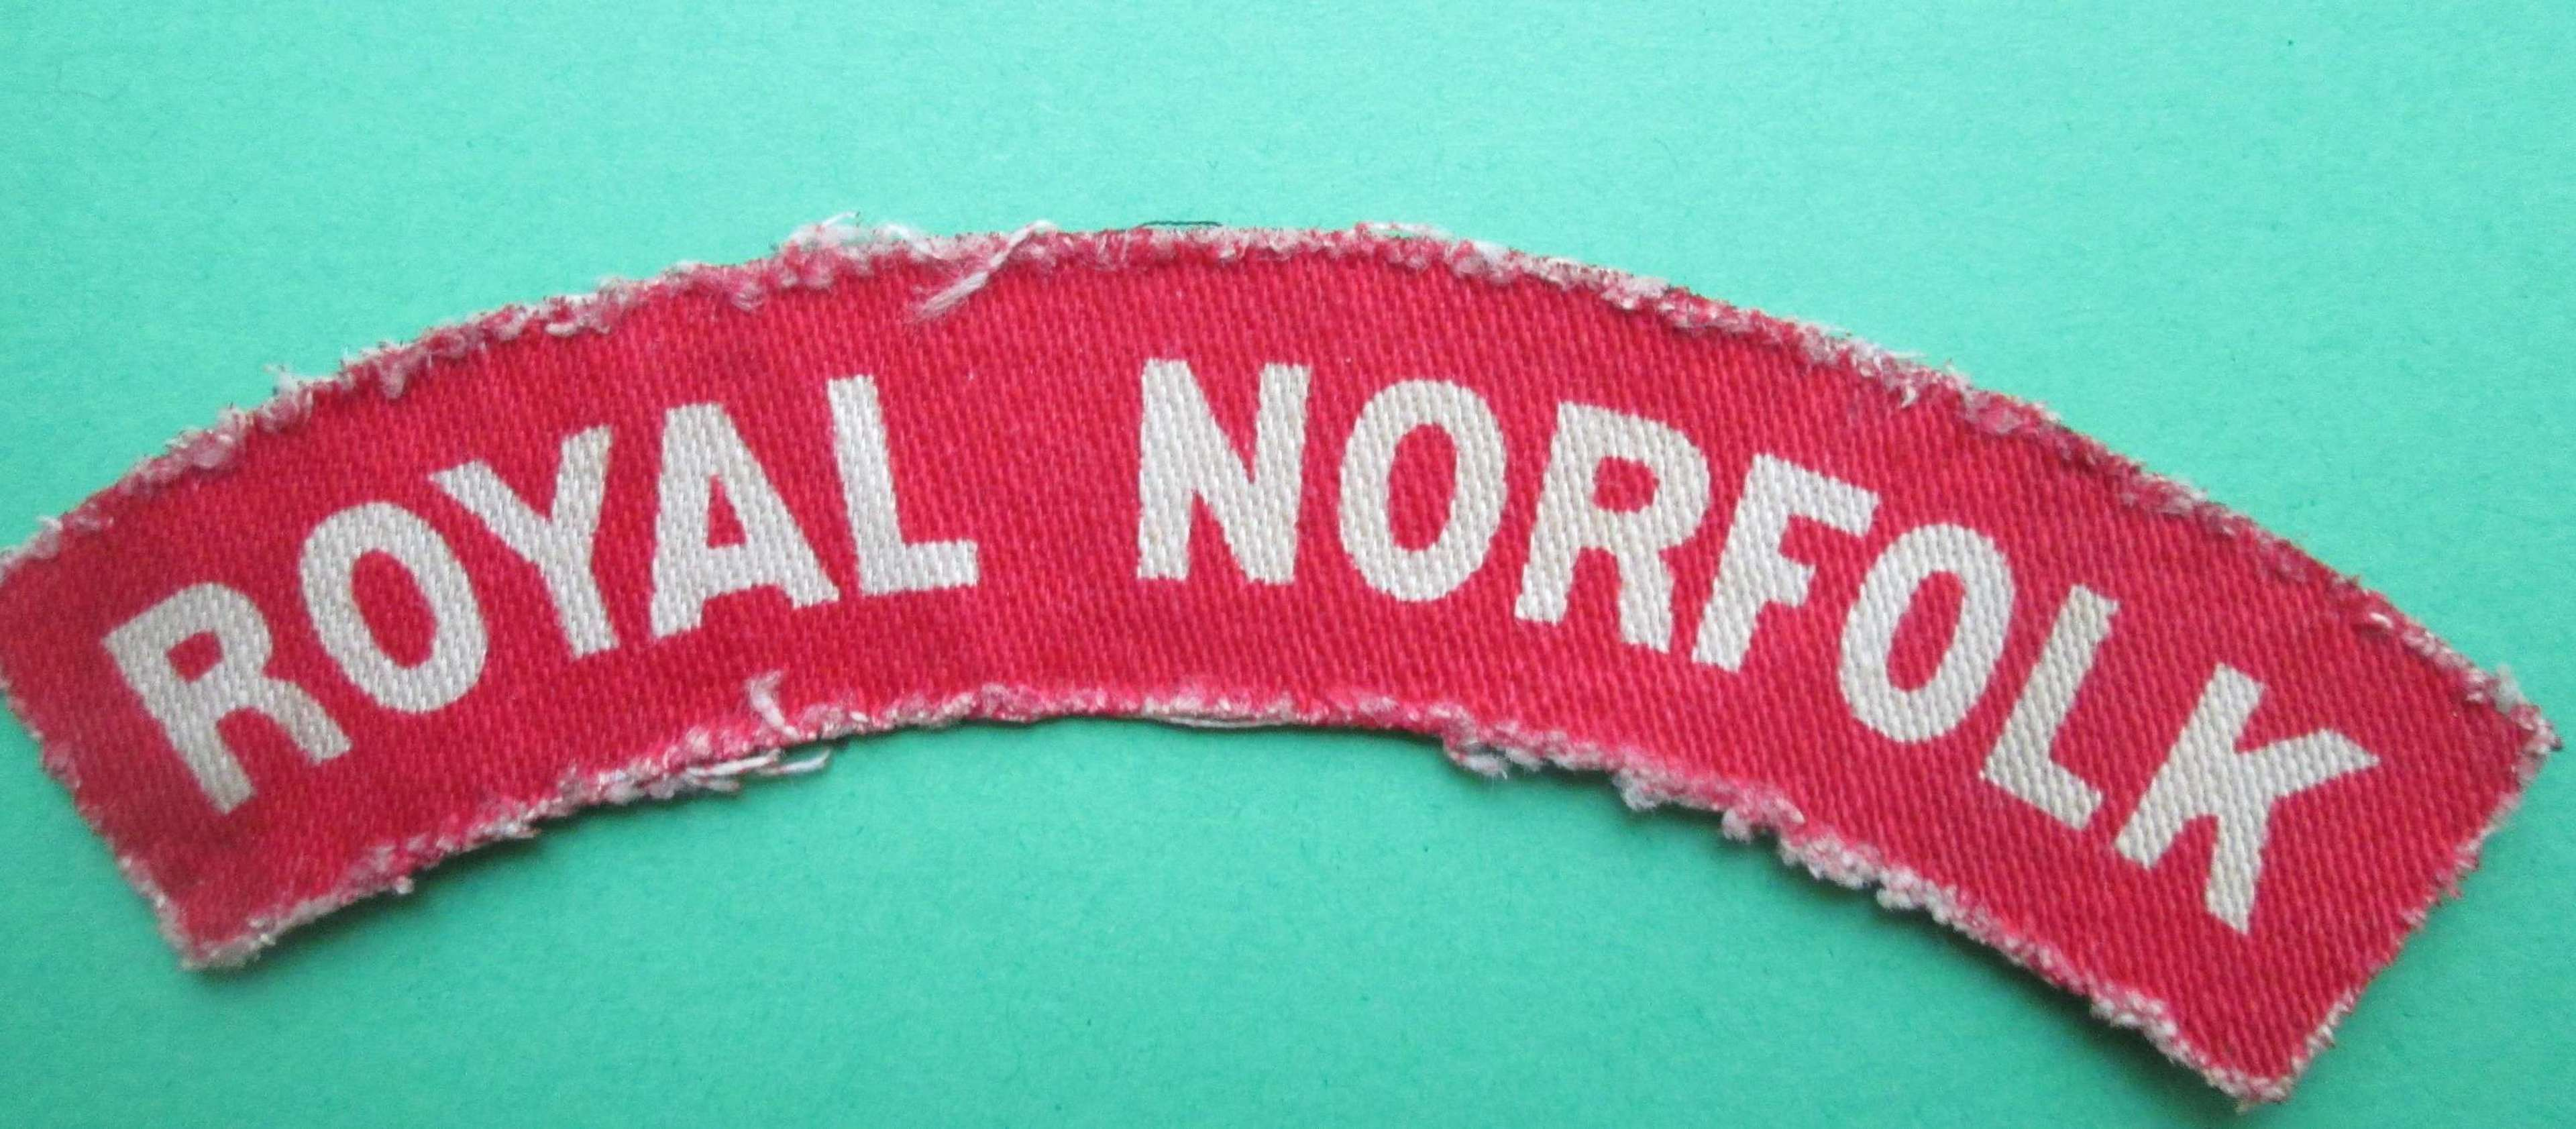 A WWII PERIOD PRINTED ROYAL NORFOLK SHOULDER TITLE